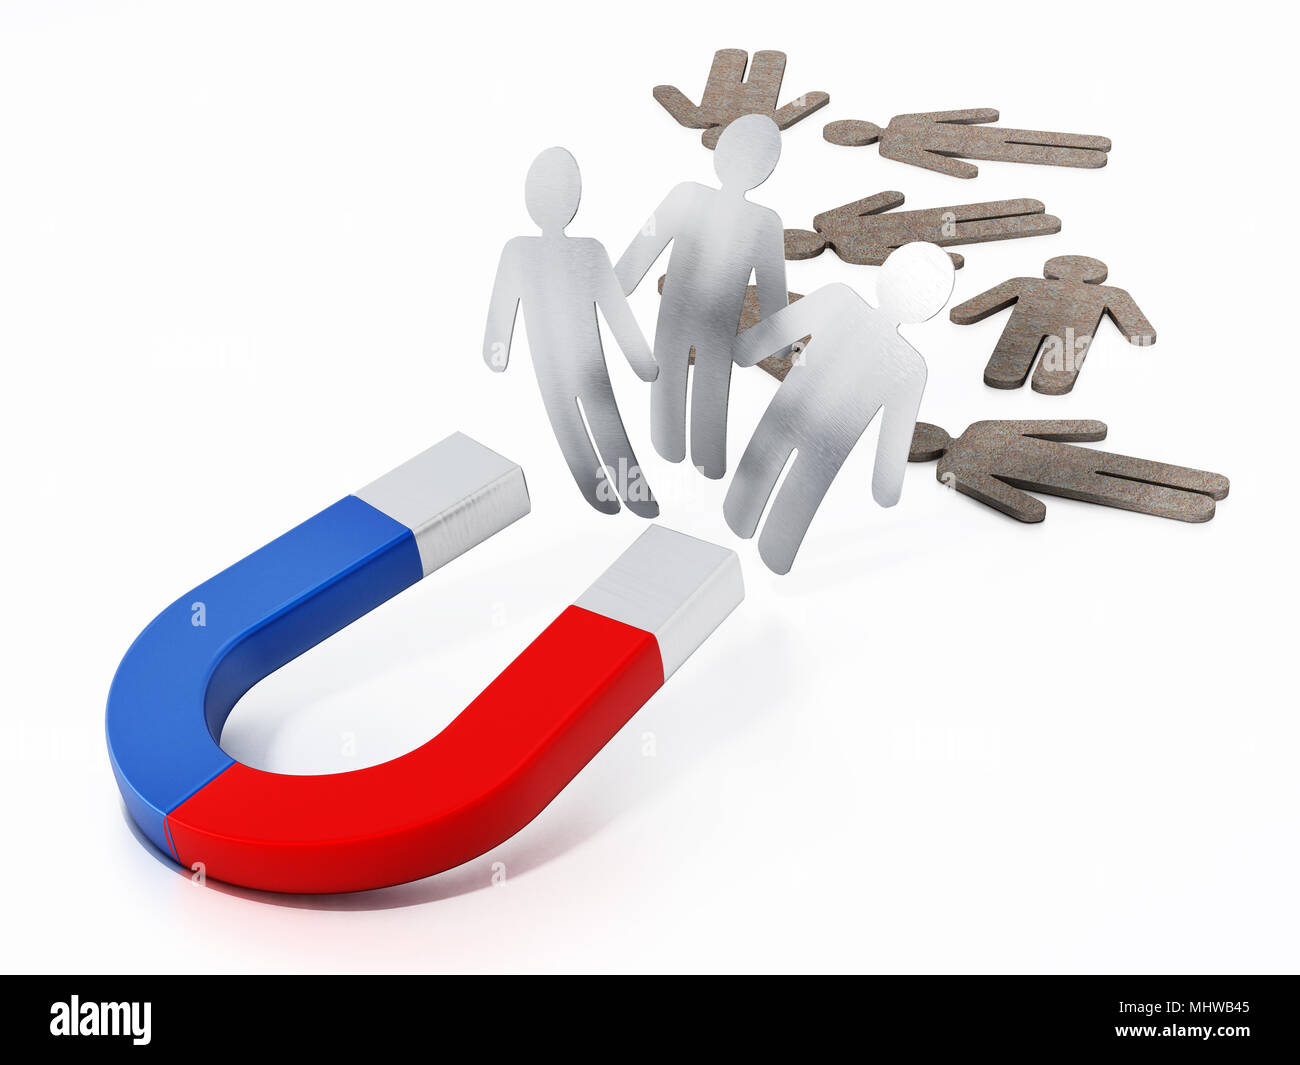 Horseshoe magnet pulling metal figures. 3D illustration. - Stock Image